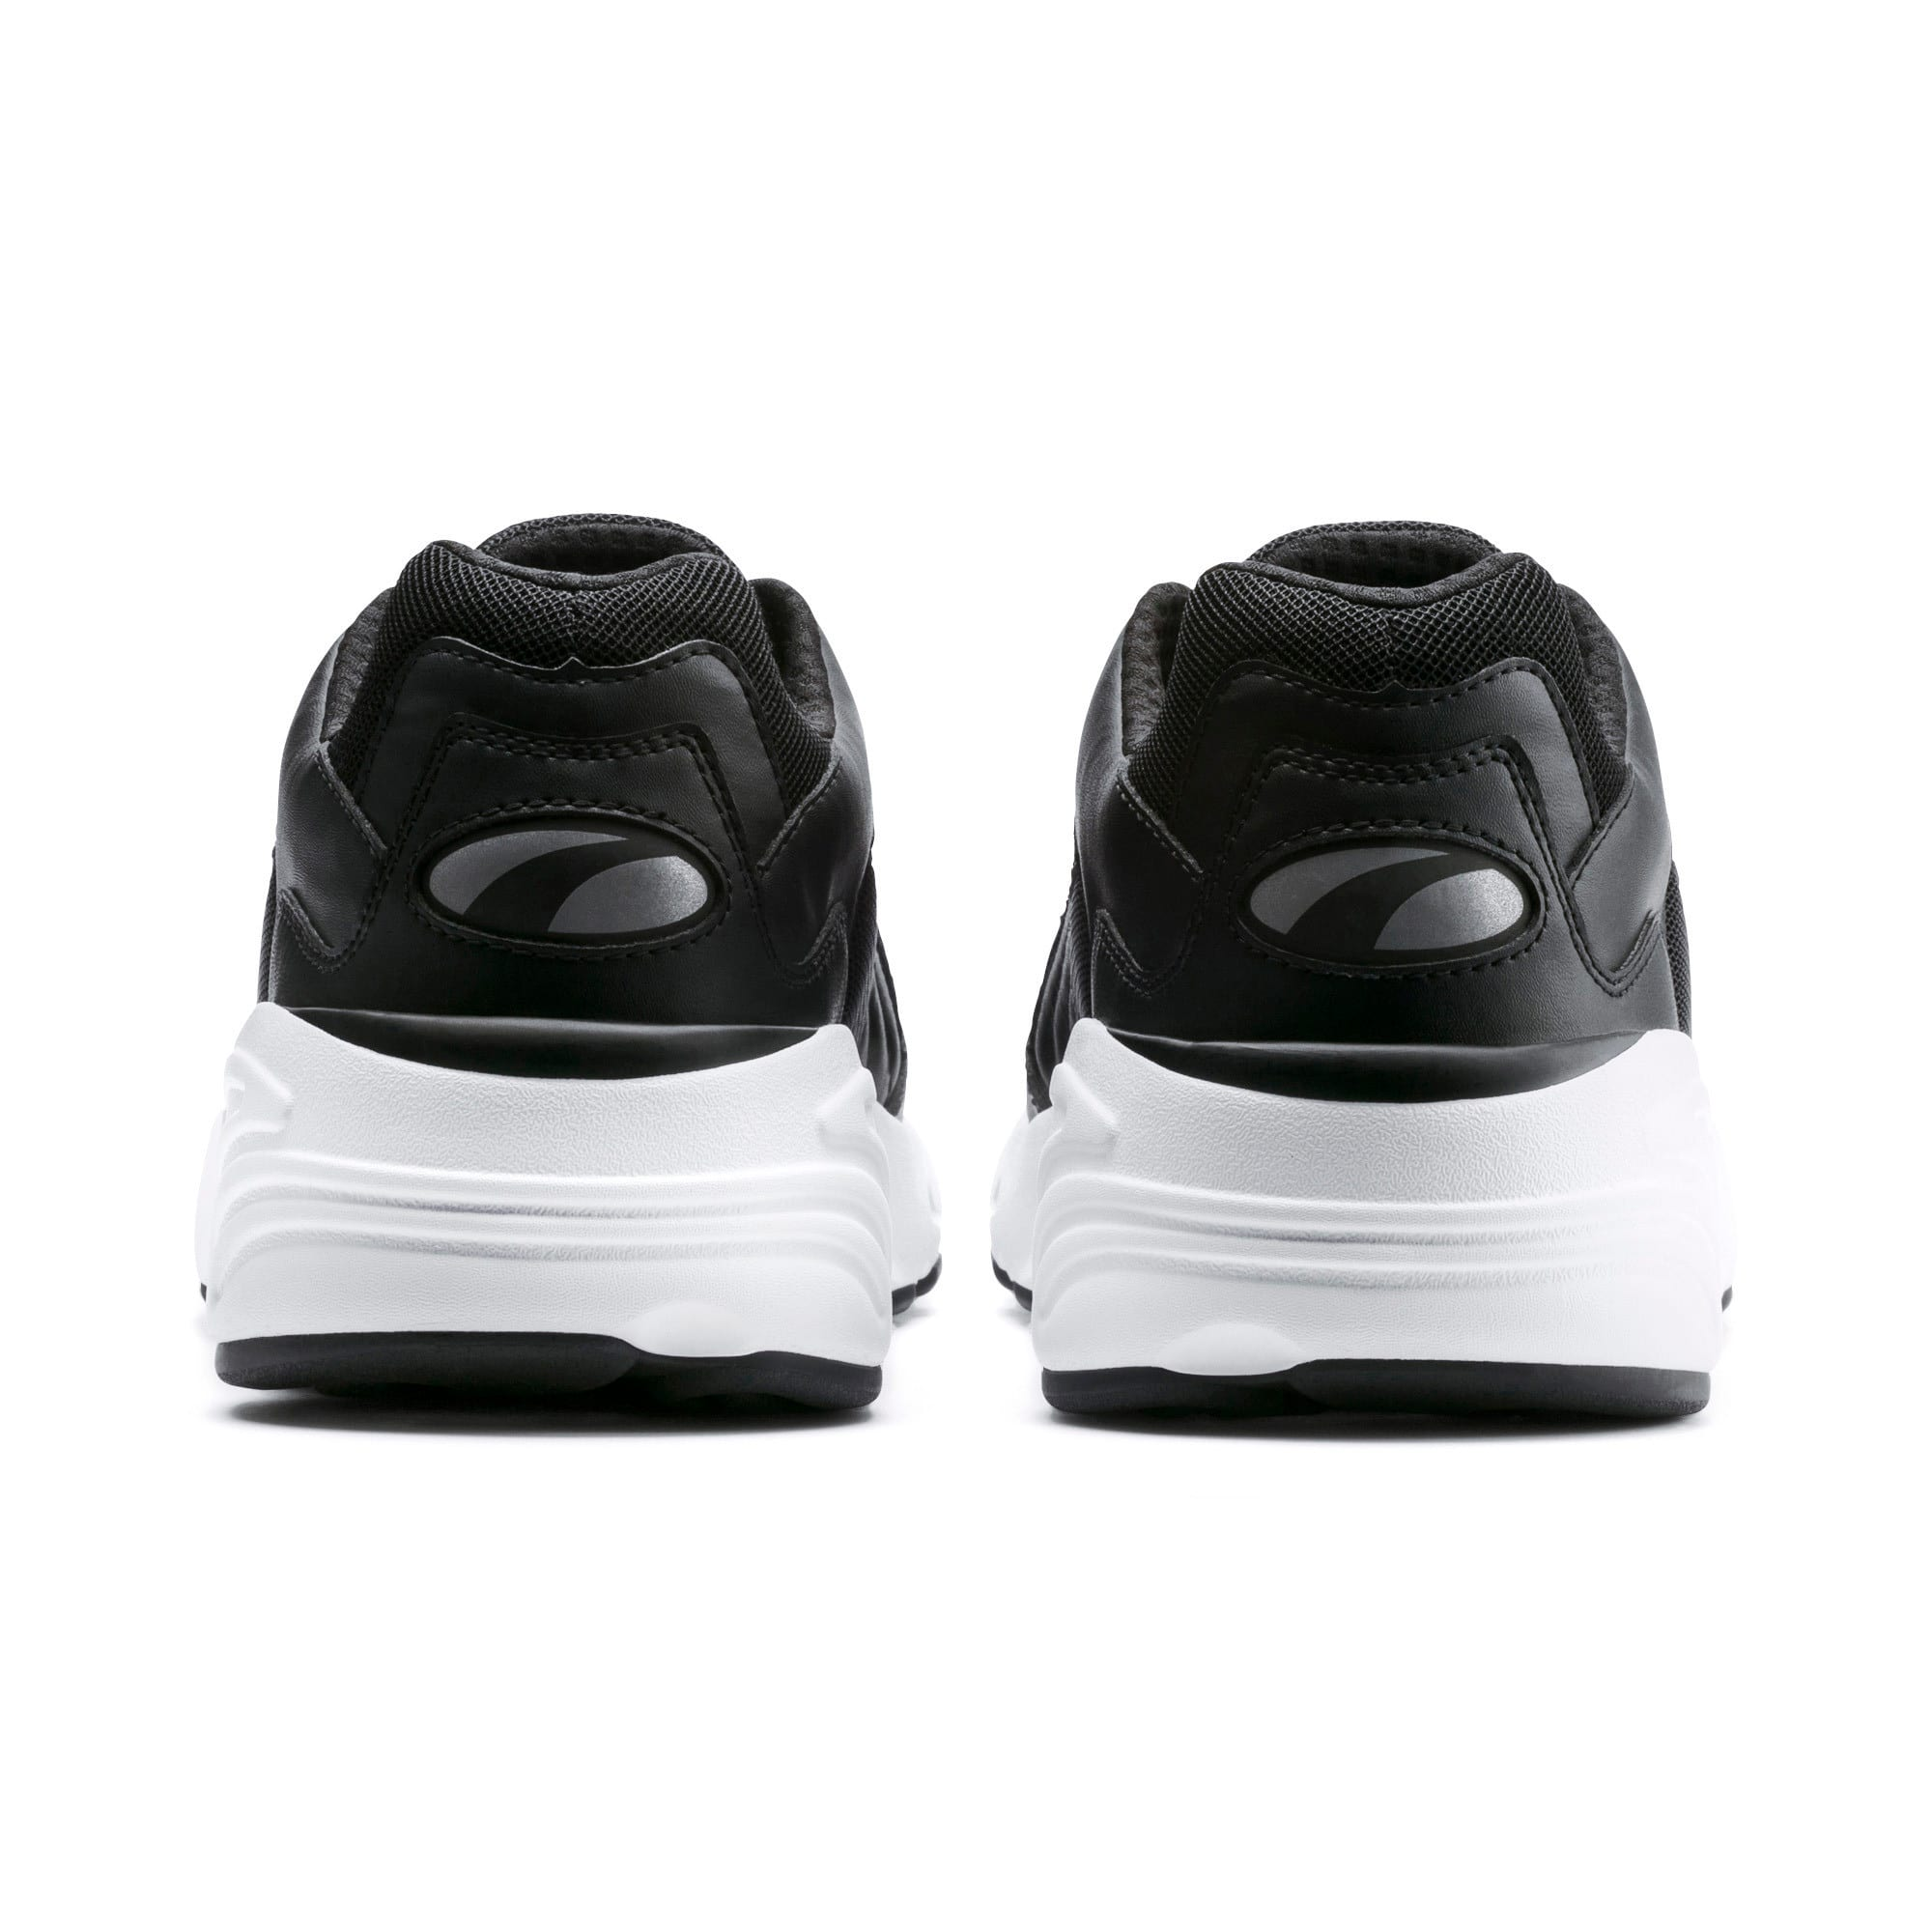 Thumbnail 3 of CELL Viper Trainers, Puma Black-Puma White, medium